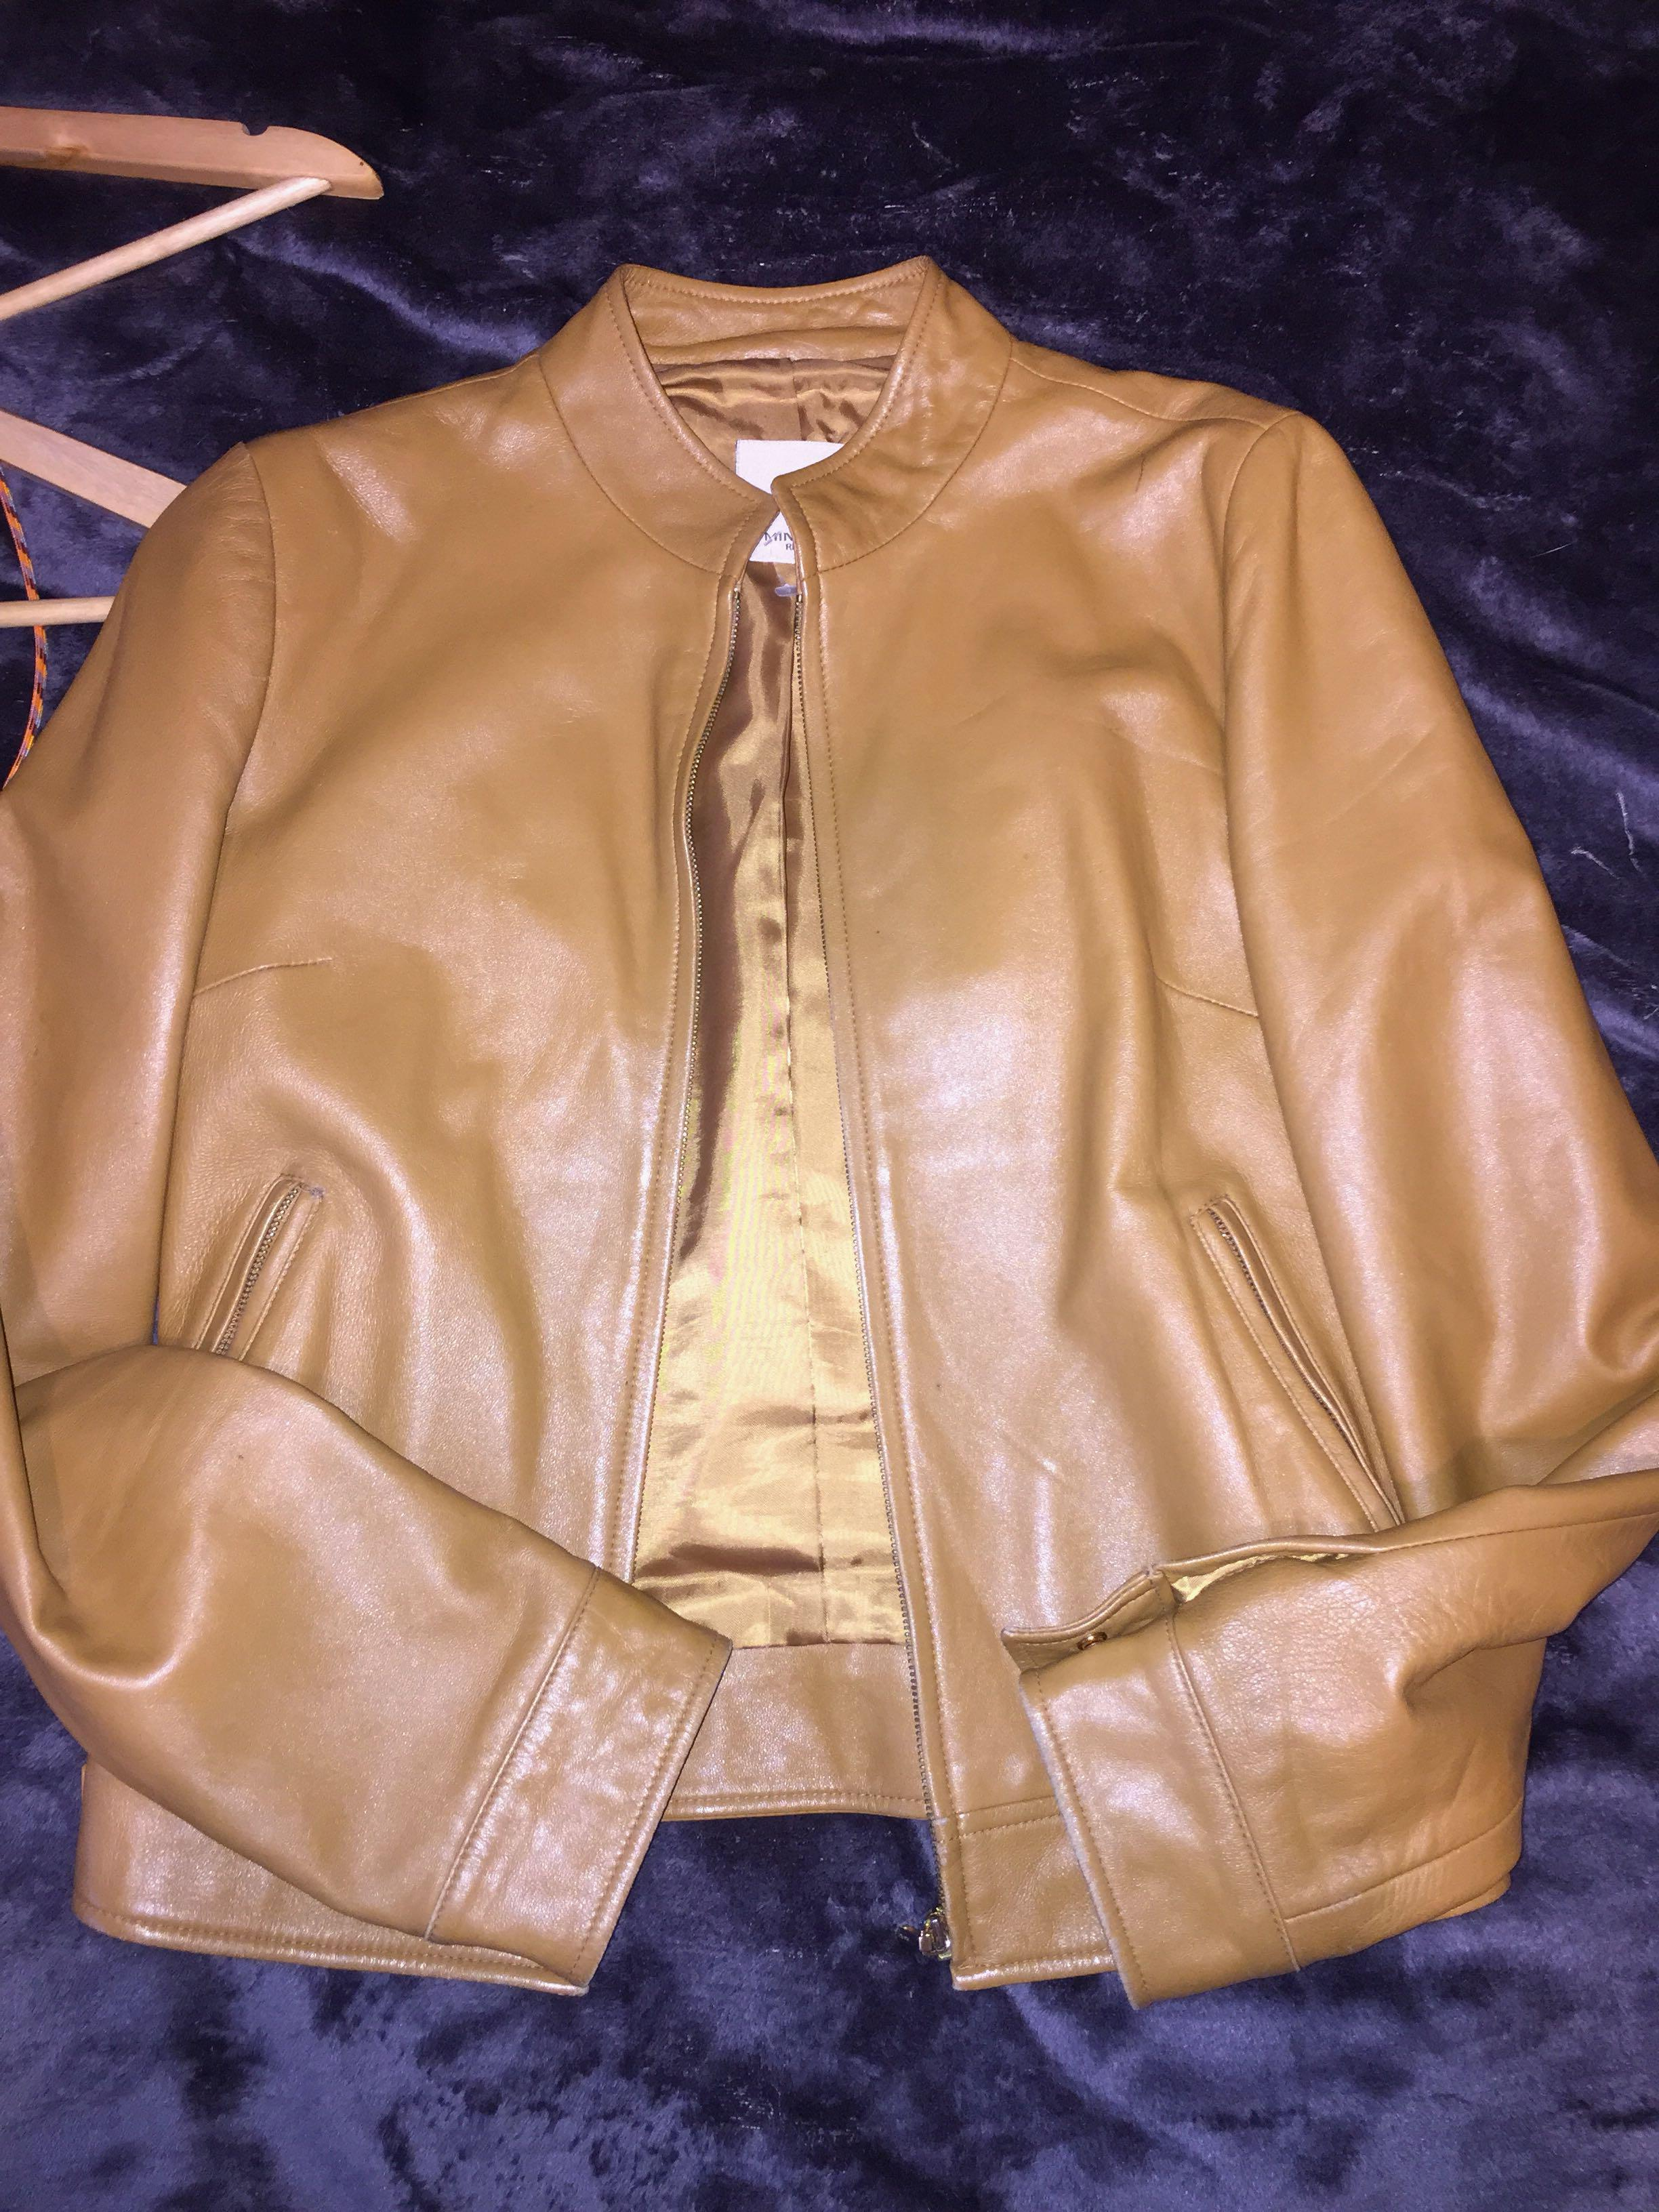 Real leather jacket from minimum